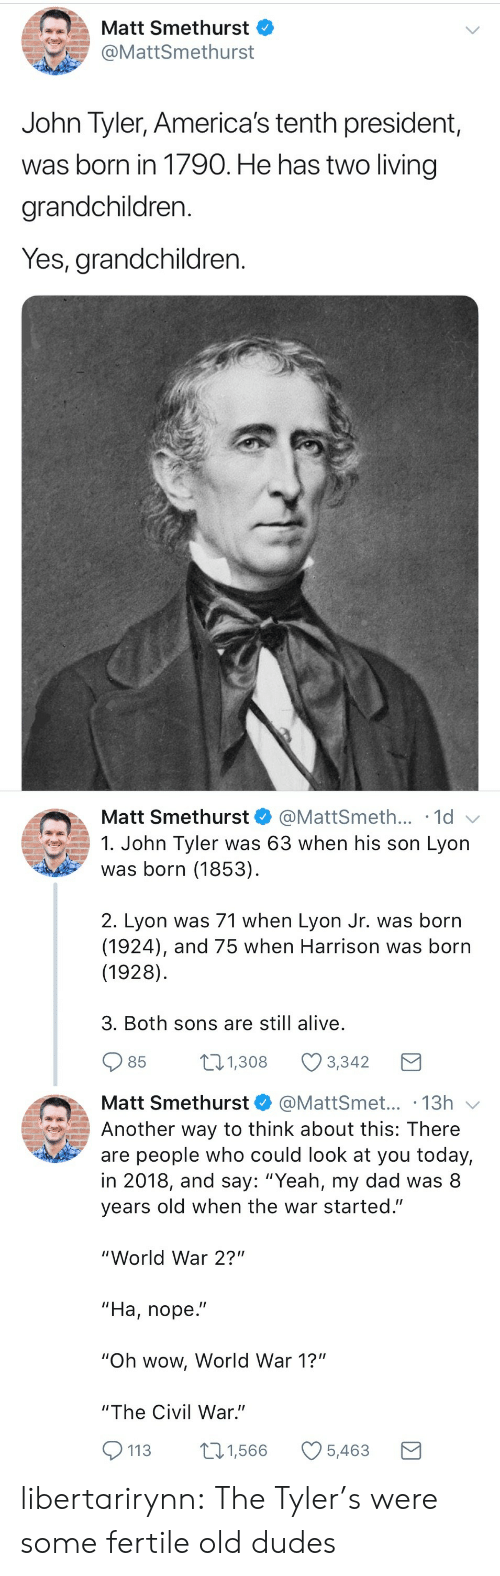 "world war 1: Matt Smethurst  @MattSmethurst  John Tyler, America's tenth president,  was born in 1790. He has two living  grandchildren.  Yes, grandchildren.   Matt Smethurst  @MattSmeth... 1d  1. John Tyler was 63 when his son Lyon  was born (1853)  2. Lyon was 71 when Lyon Jr. was born  (1924), and 75 when Harrison was born  (1928)  3. Both sons are still alive  85  1.308 Ø3342  Matt Smethurst@MattSmet... .13h  Another way to think about this: There  are people who could look at you today,  in 2018, and say: ""Yeah, my dad was 8  years old when the war started.""  ""World War 2?""  ""Ha, nope.""  ""Oh wow, World War 1?""  ""The Civil War.""  113 1,566 5,463 libertarirynn: The Tyler's were some fertile old dudes"